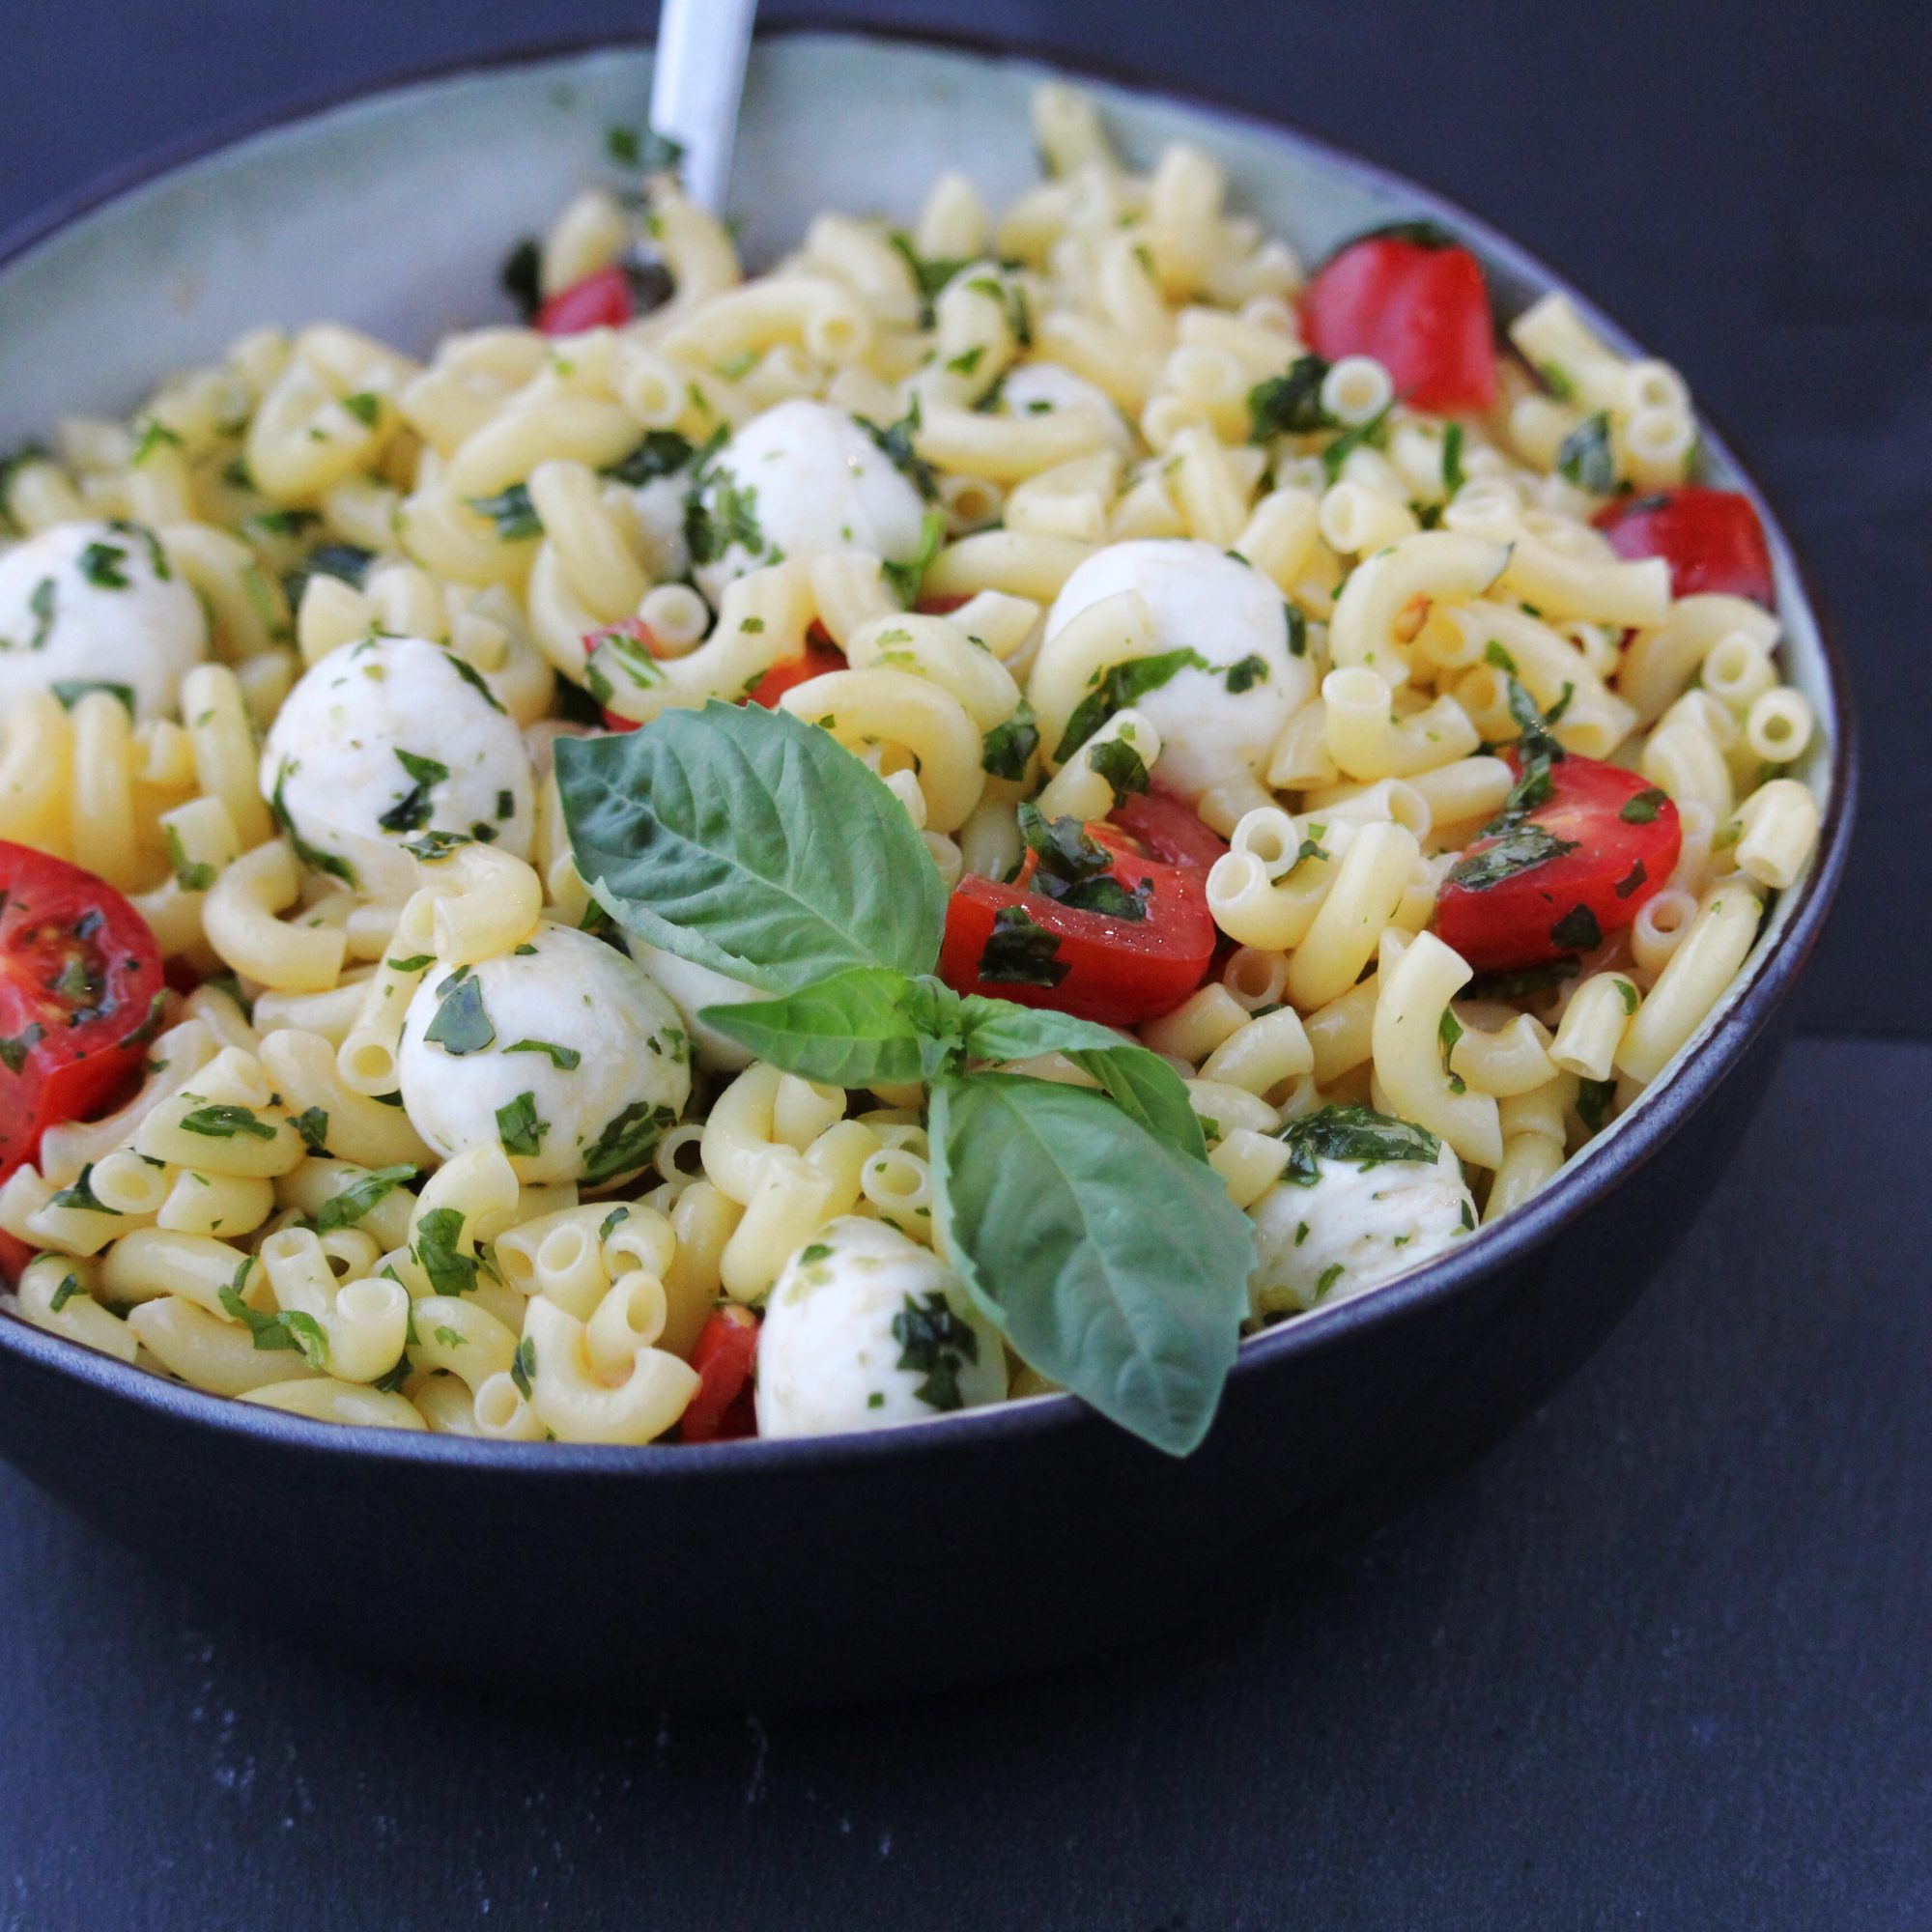 10 Pasta Salads to Perk up Your Weekday Lunch